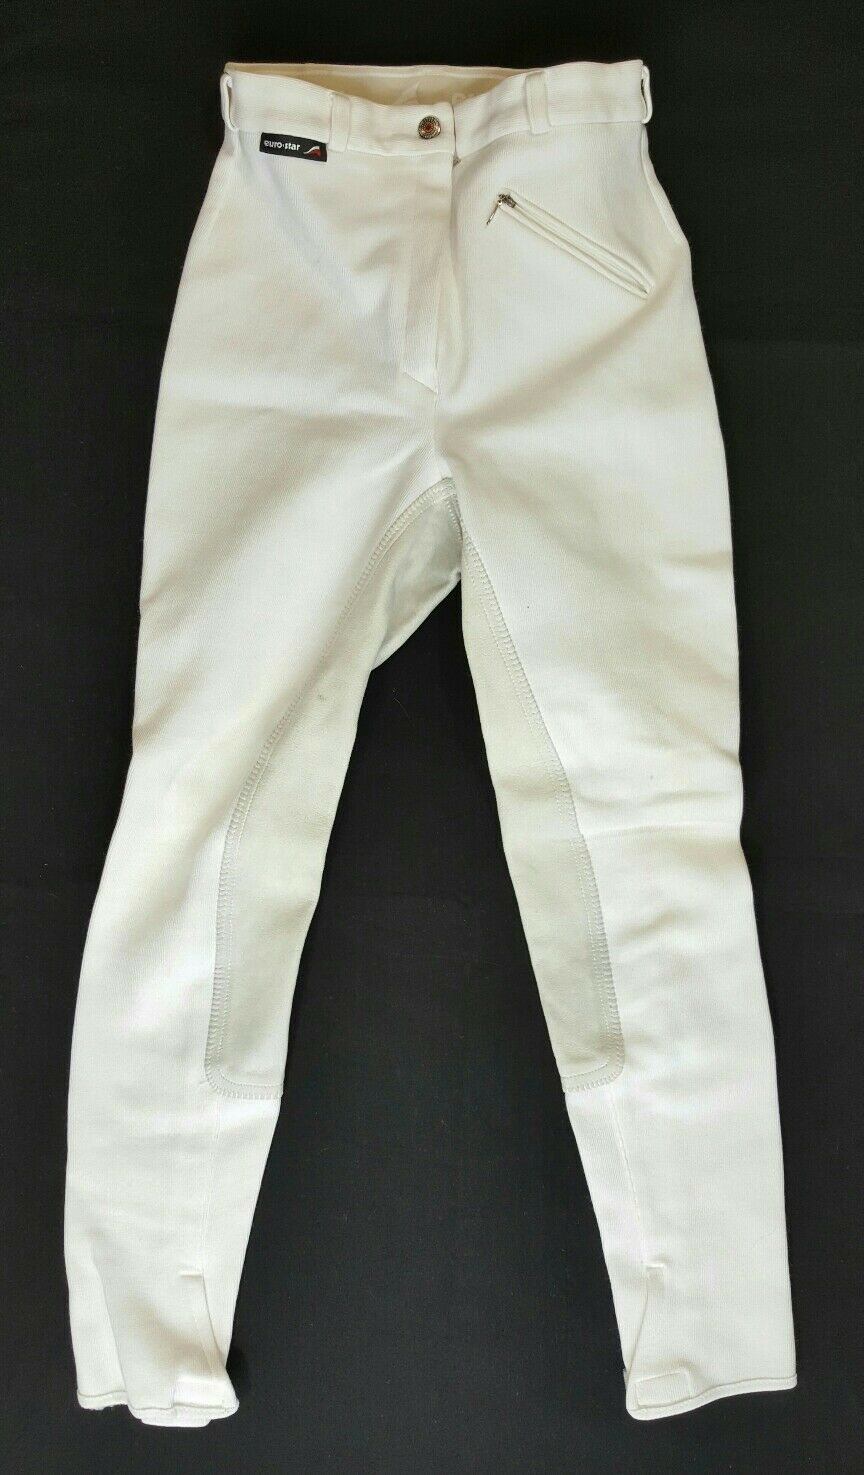 Pre-owned White Euro-Star Full Seat Breeches Husar Size 38 Horse Riding